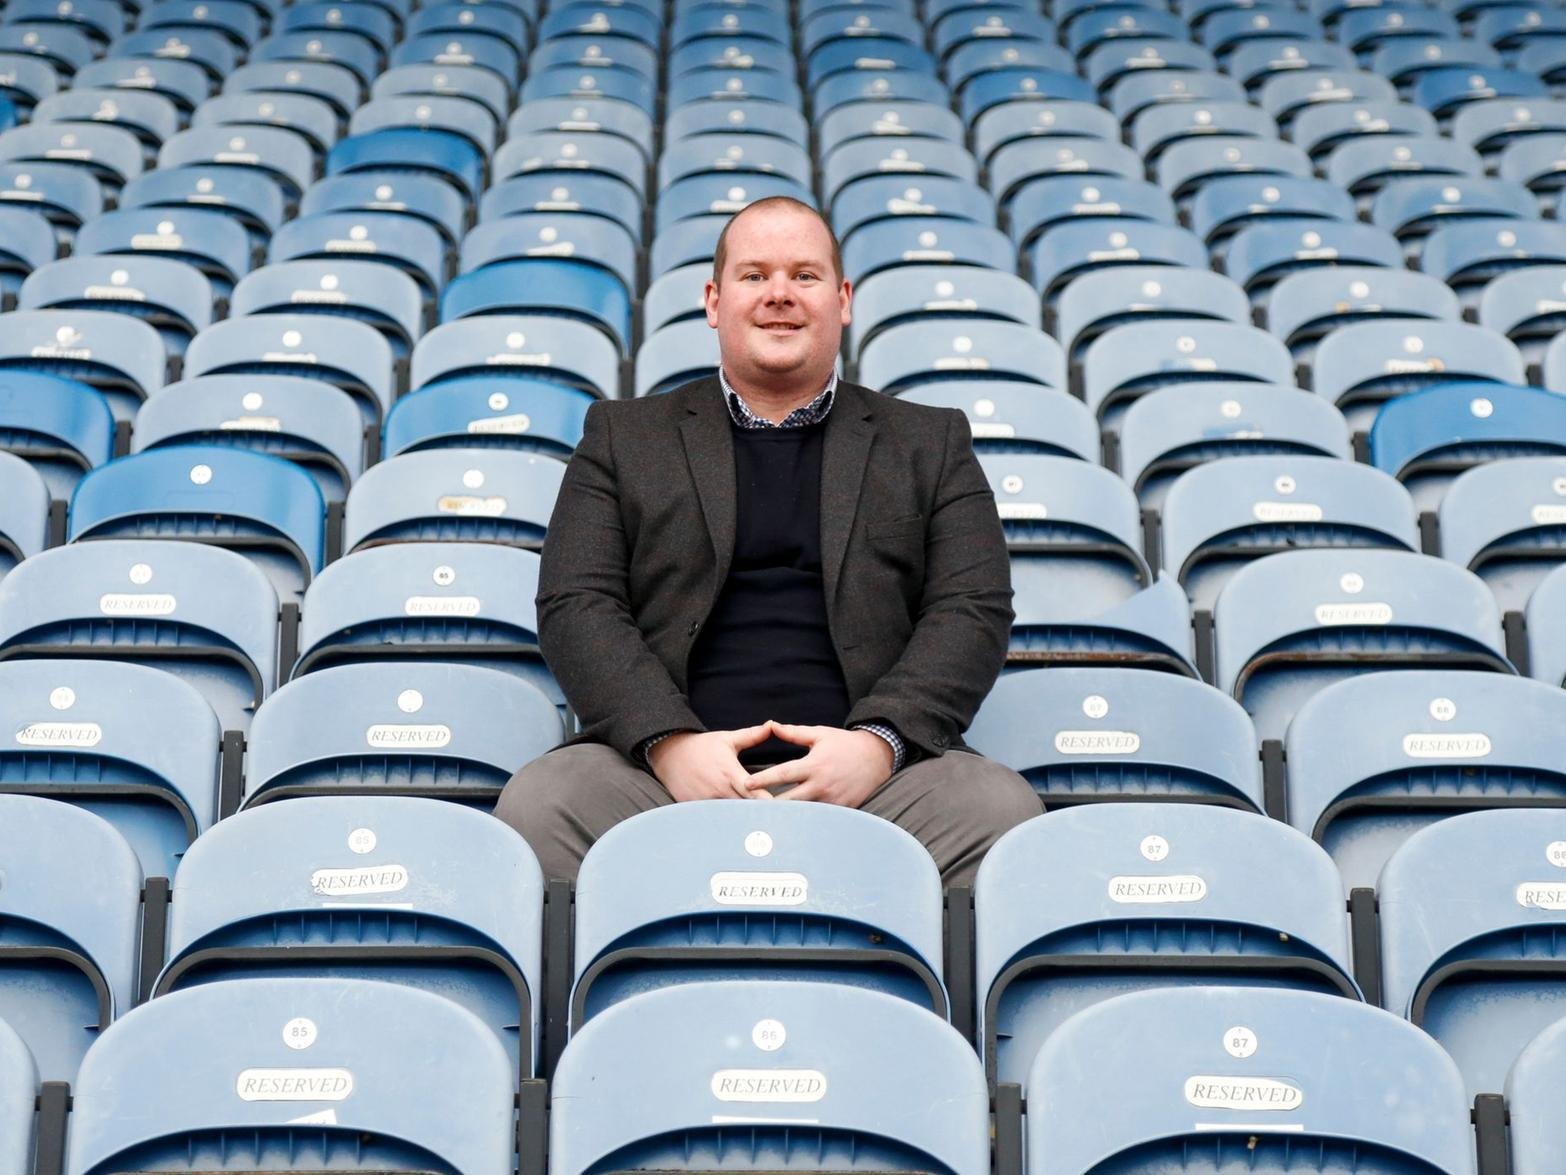 How Huddersfield Town aims to reach out to a global corporate audience